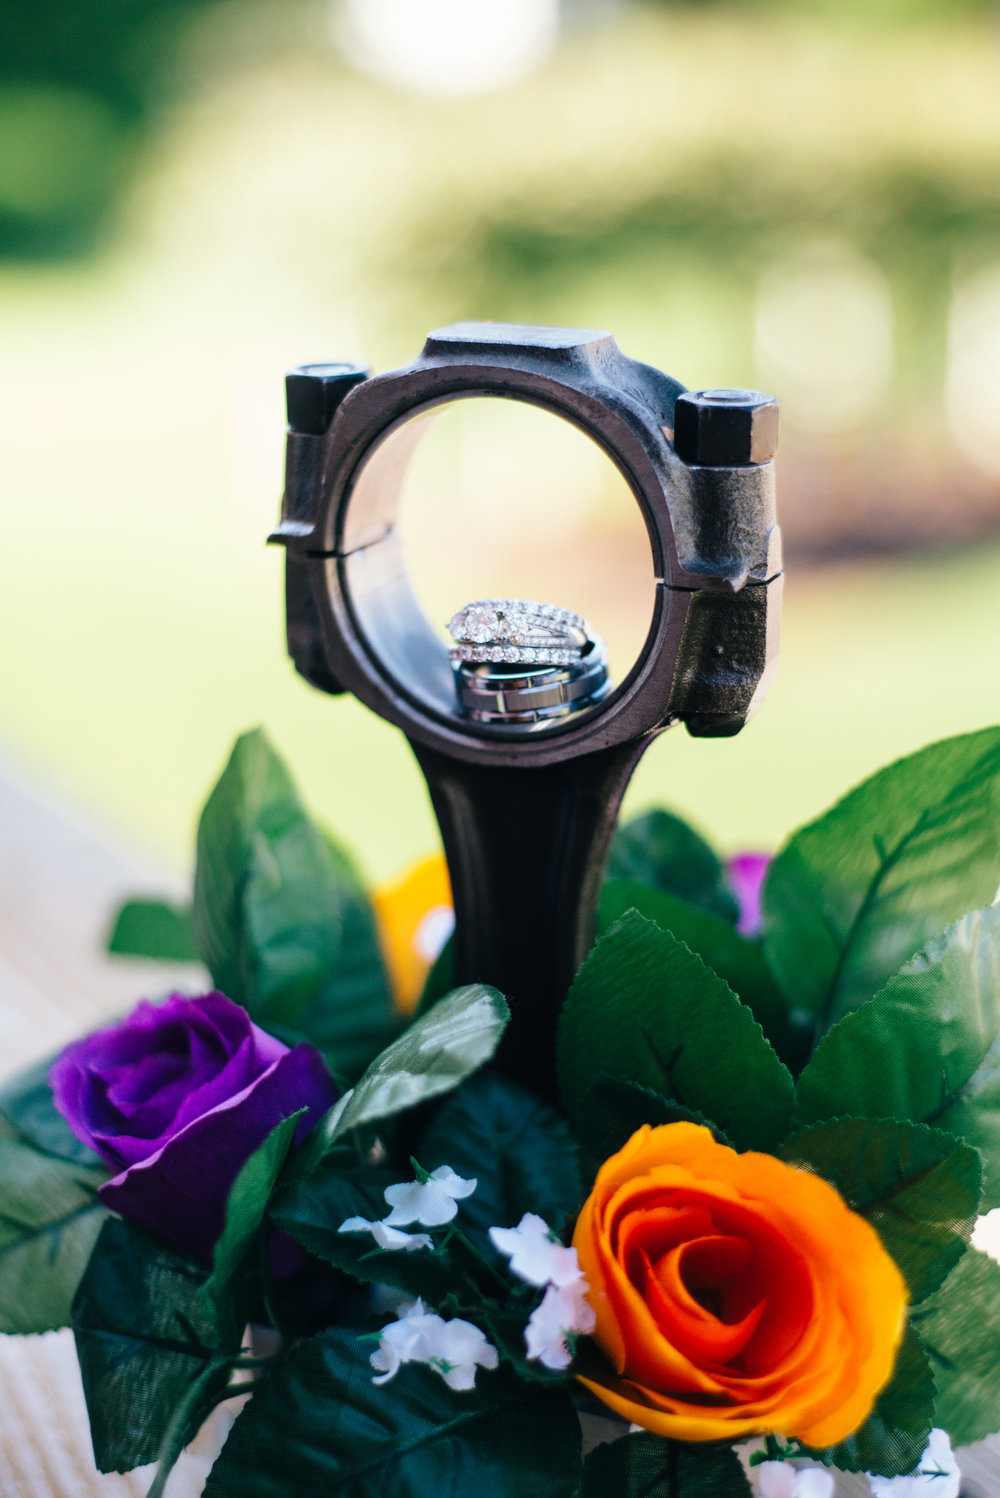 DIY car themed wedding centerpiece piston with wedding rings